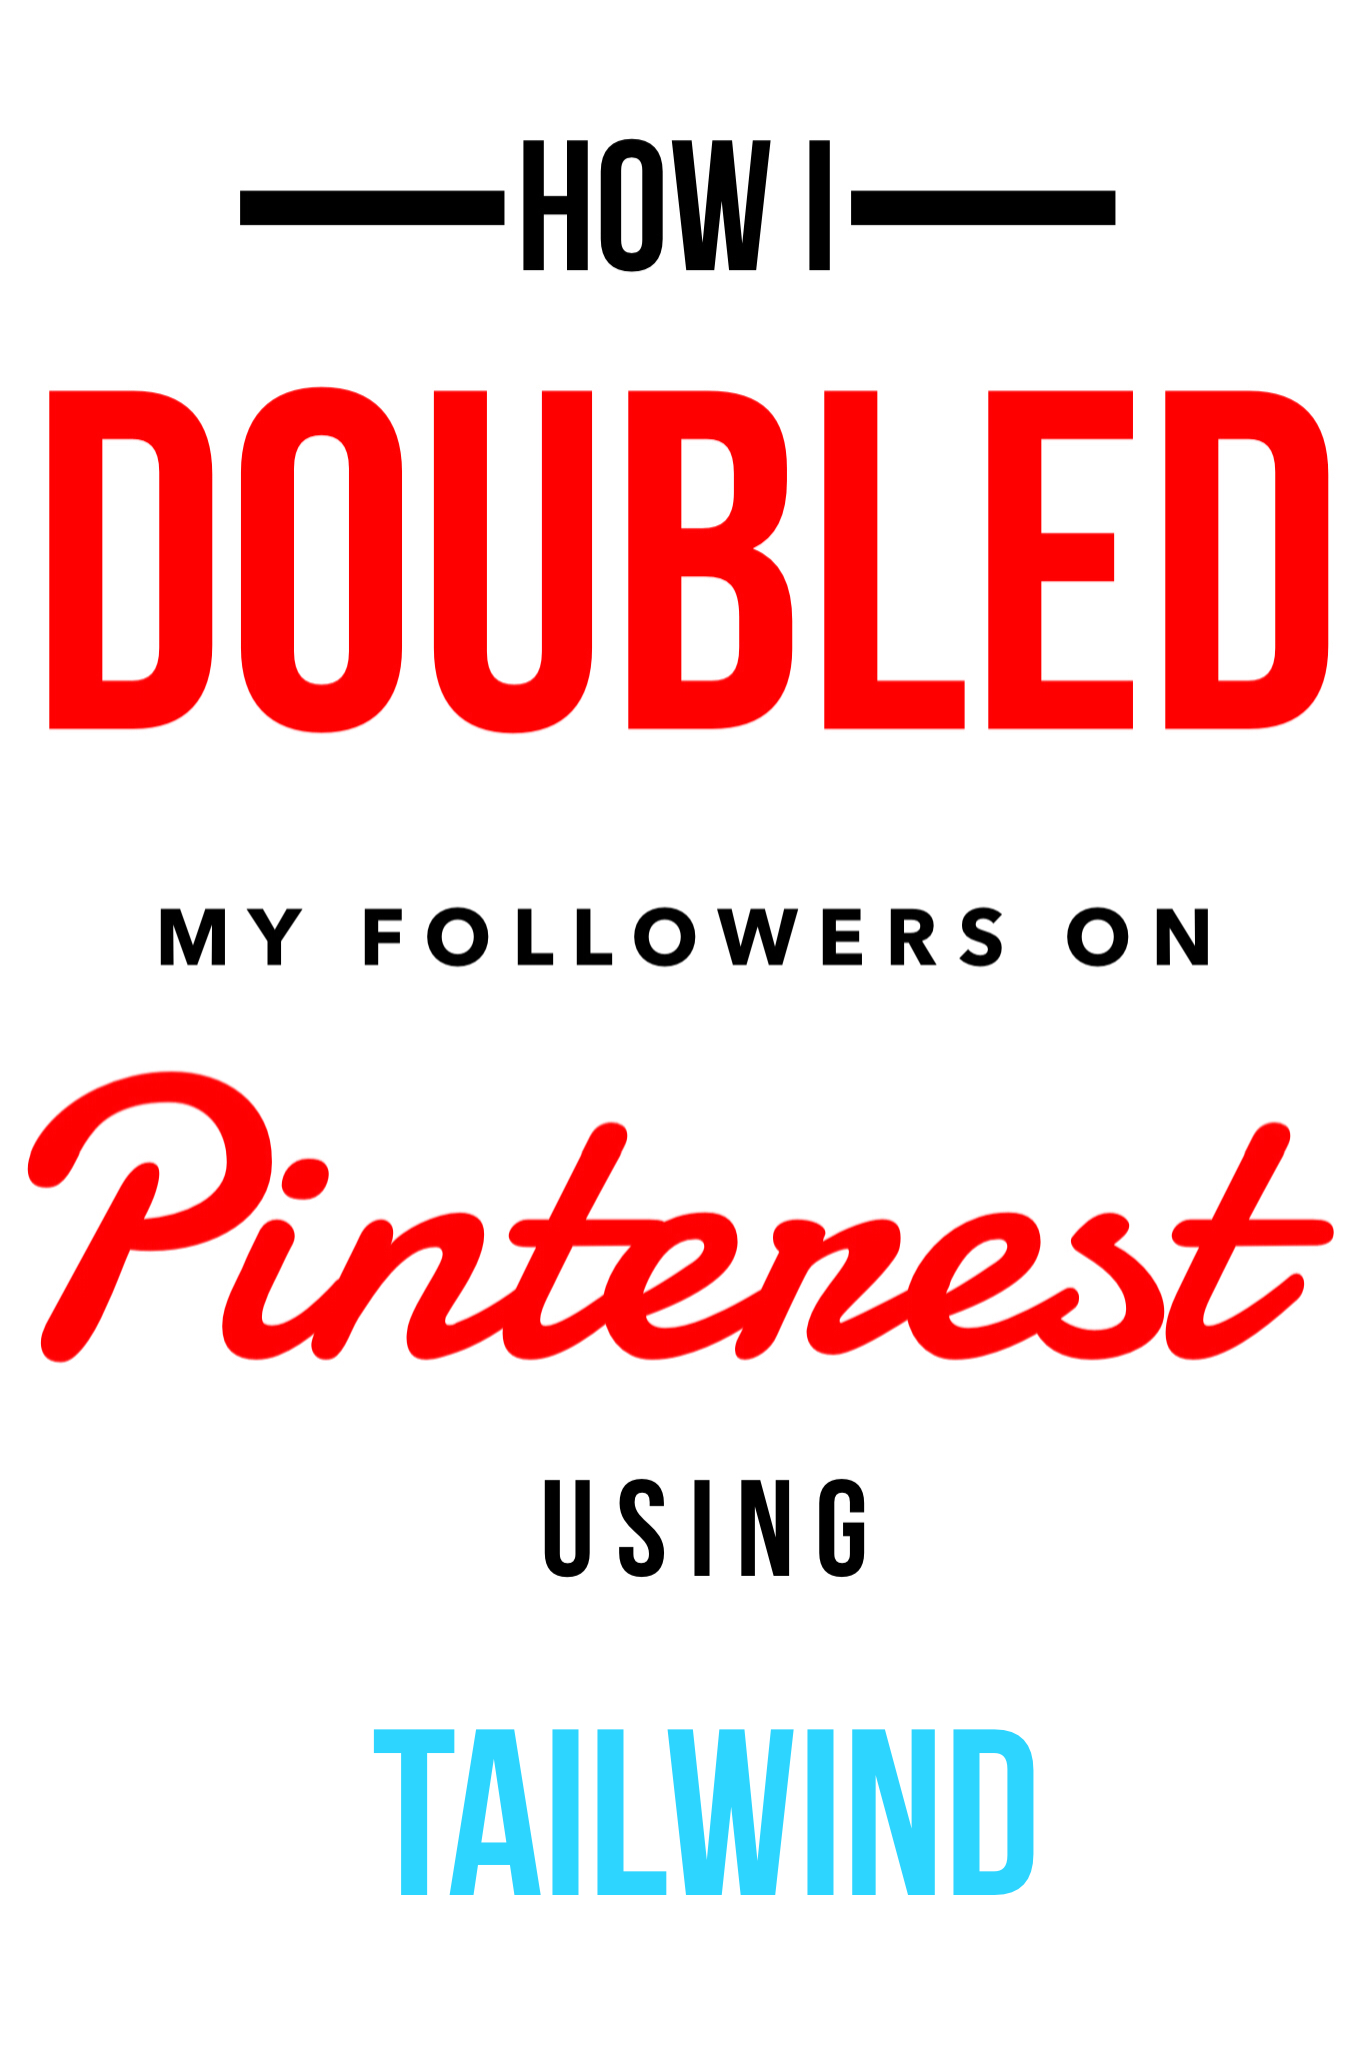 How to increase your Pinterest followers with Tailwind